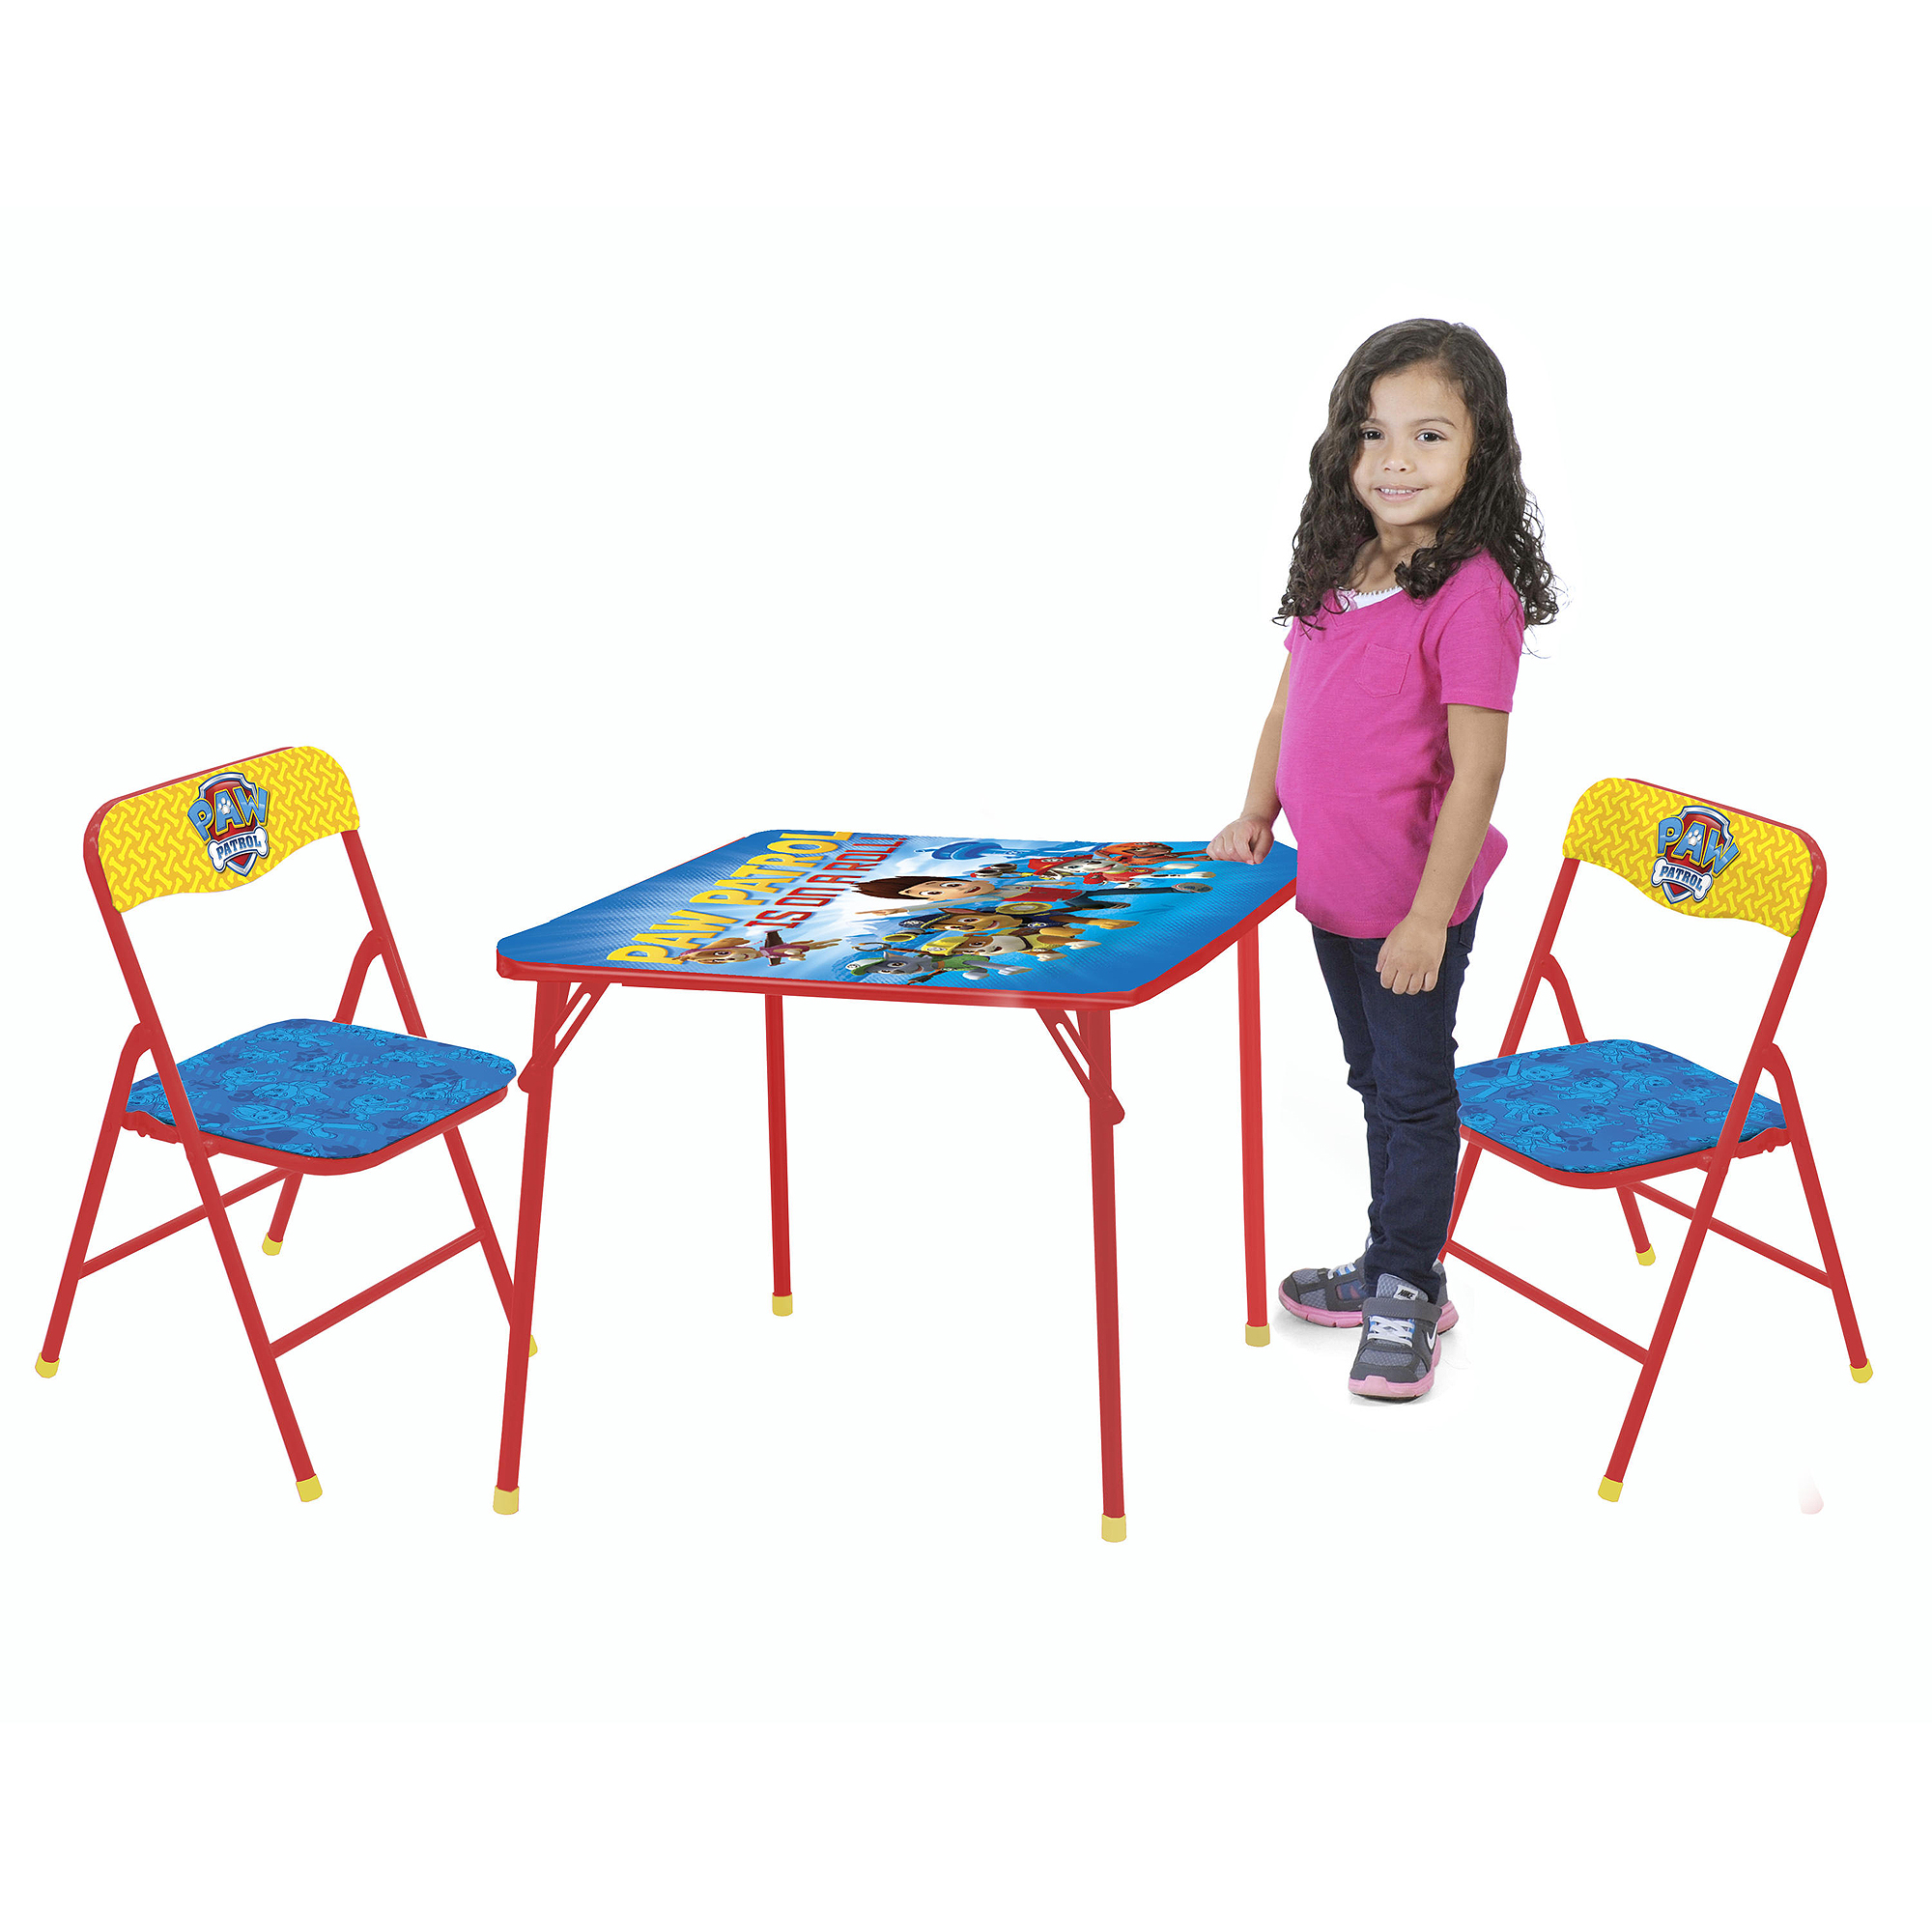 Nickelodeon Paw Patrol 3-Piece Table and Chair Set